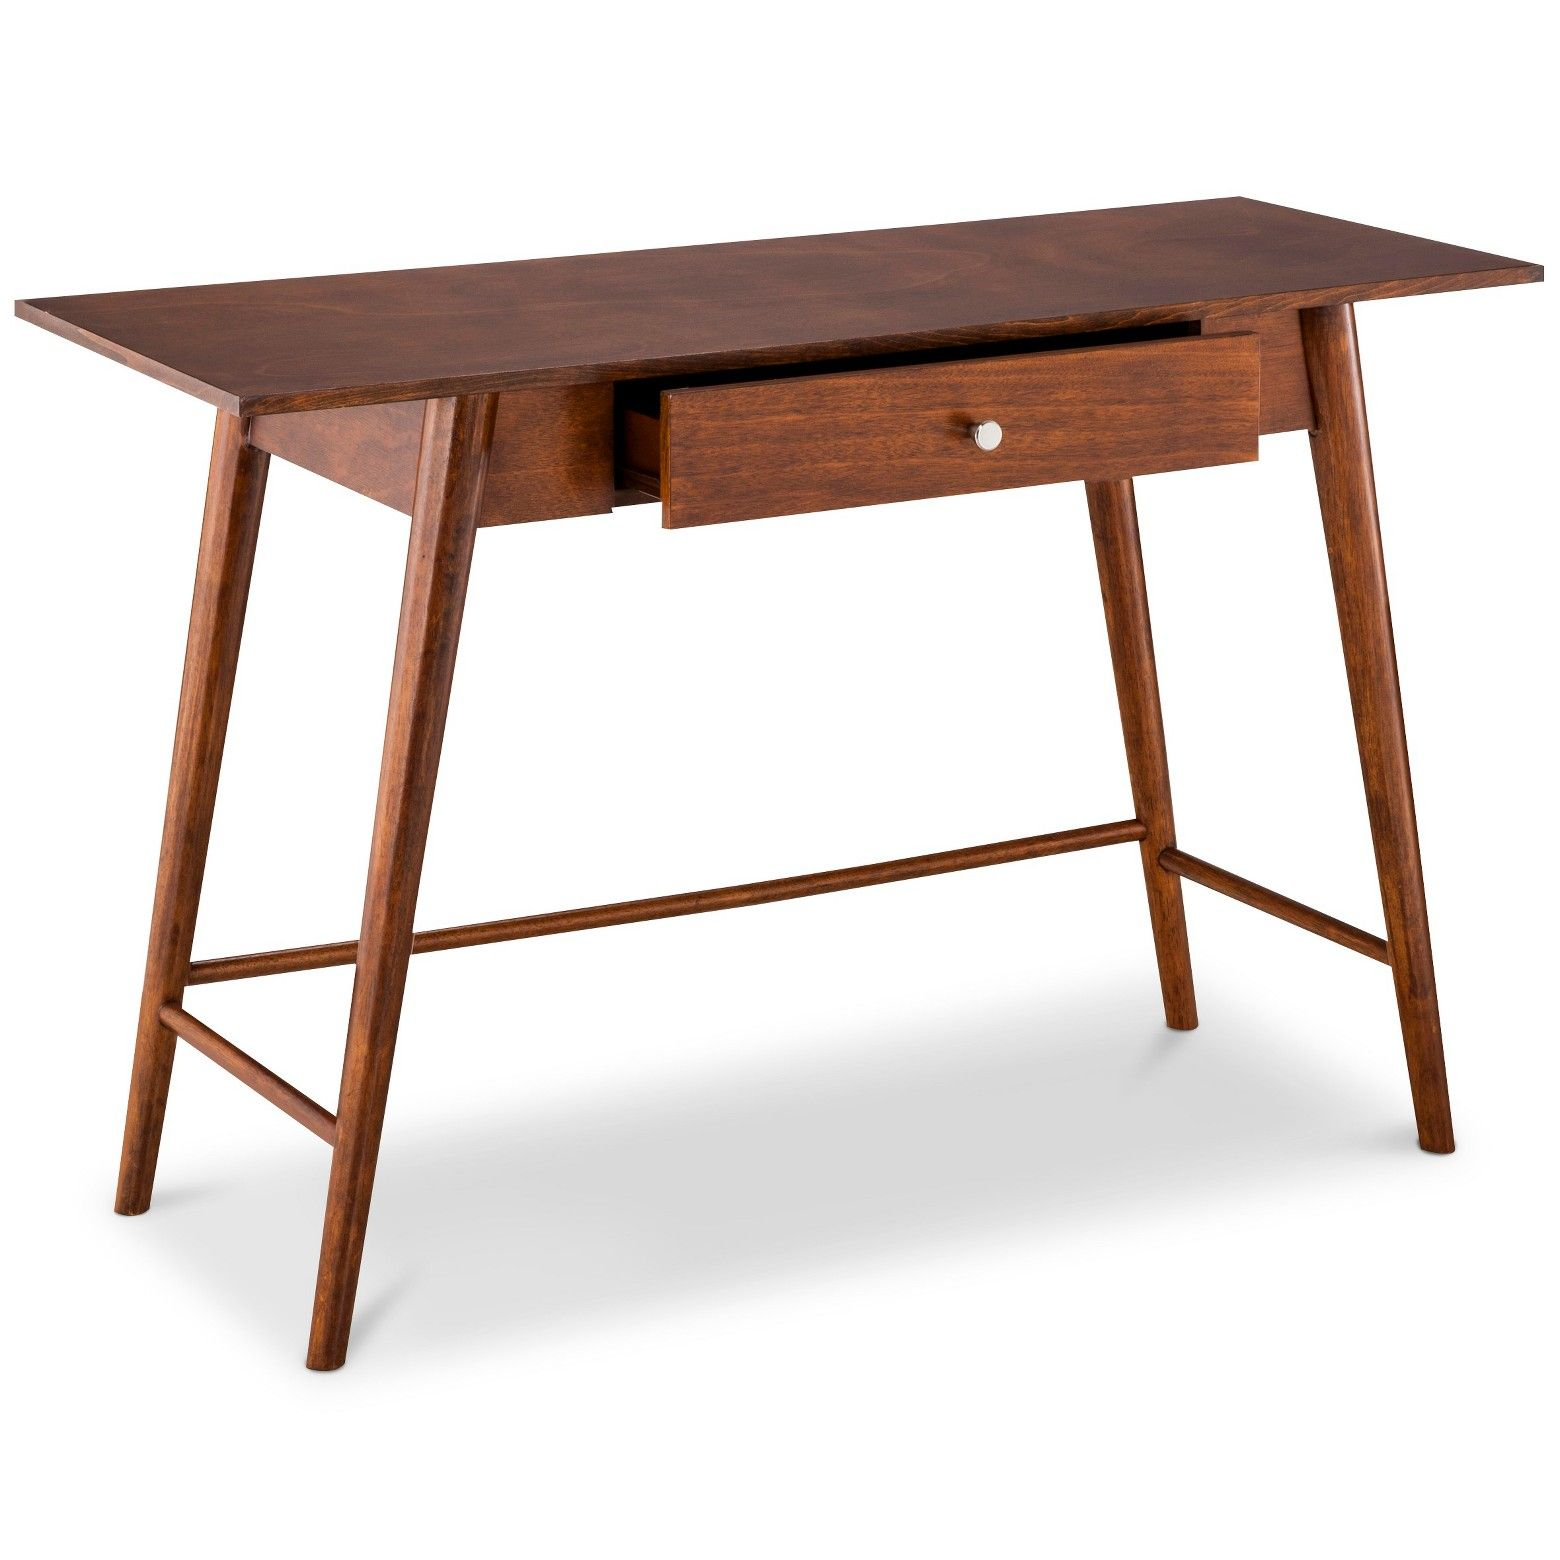 Amherst Mid Century Modern Desk/Console Table Brown